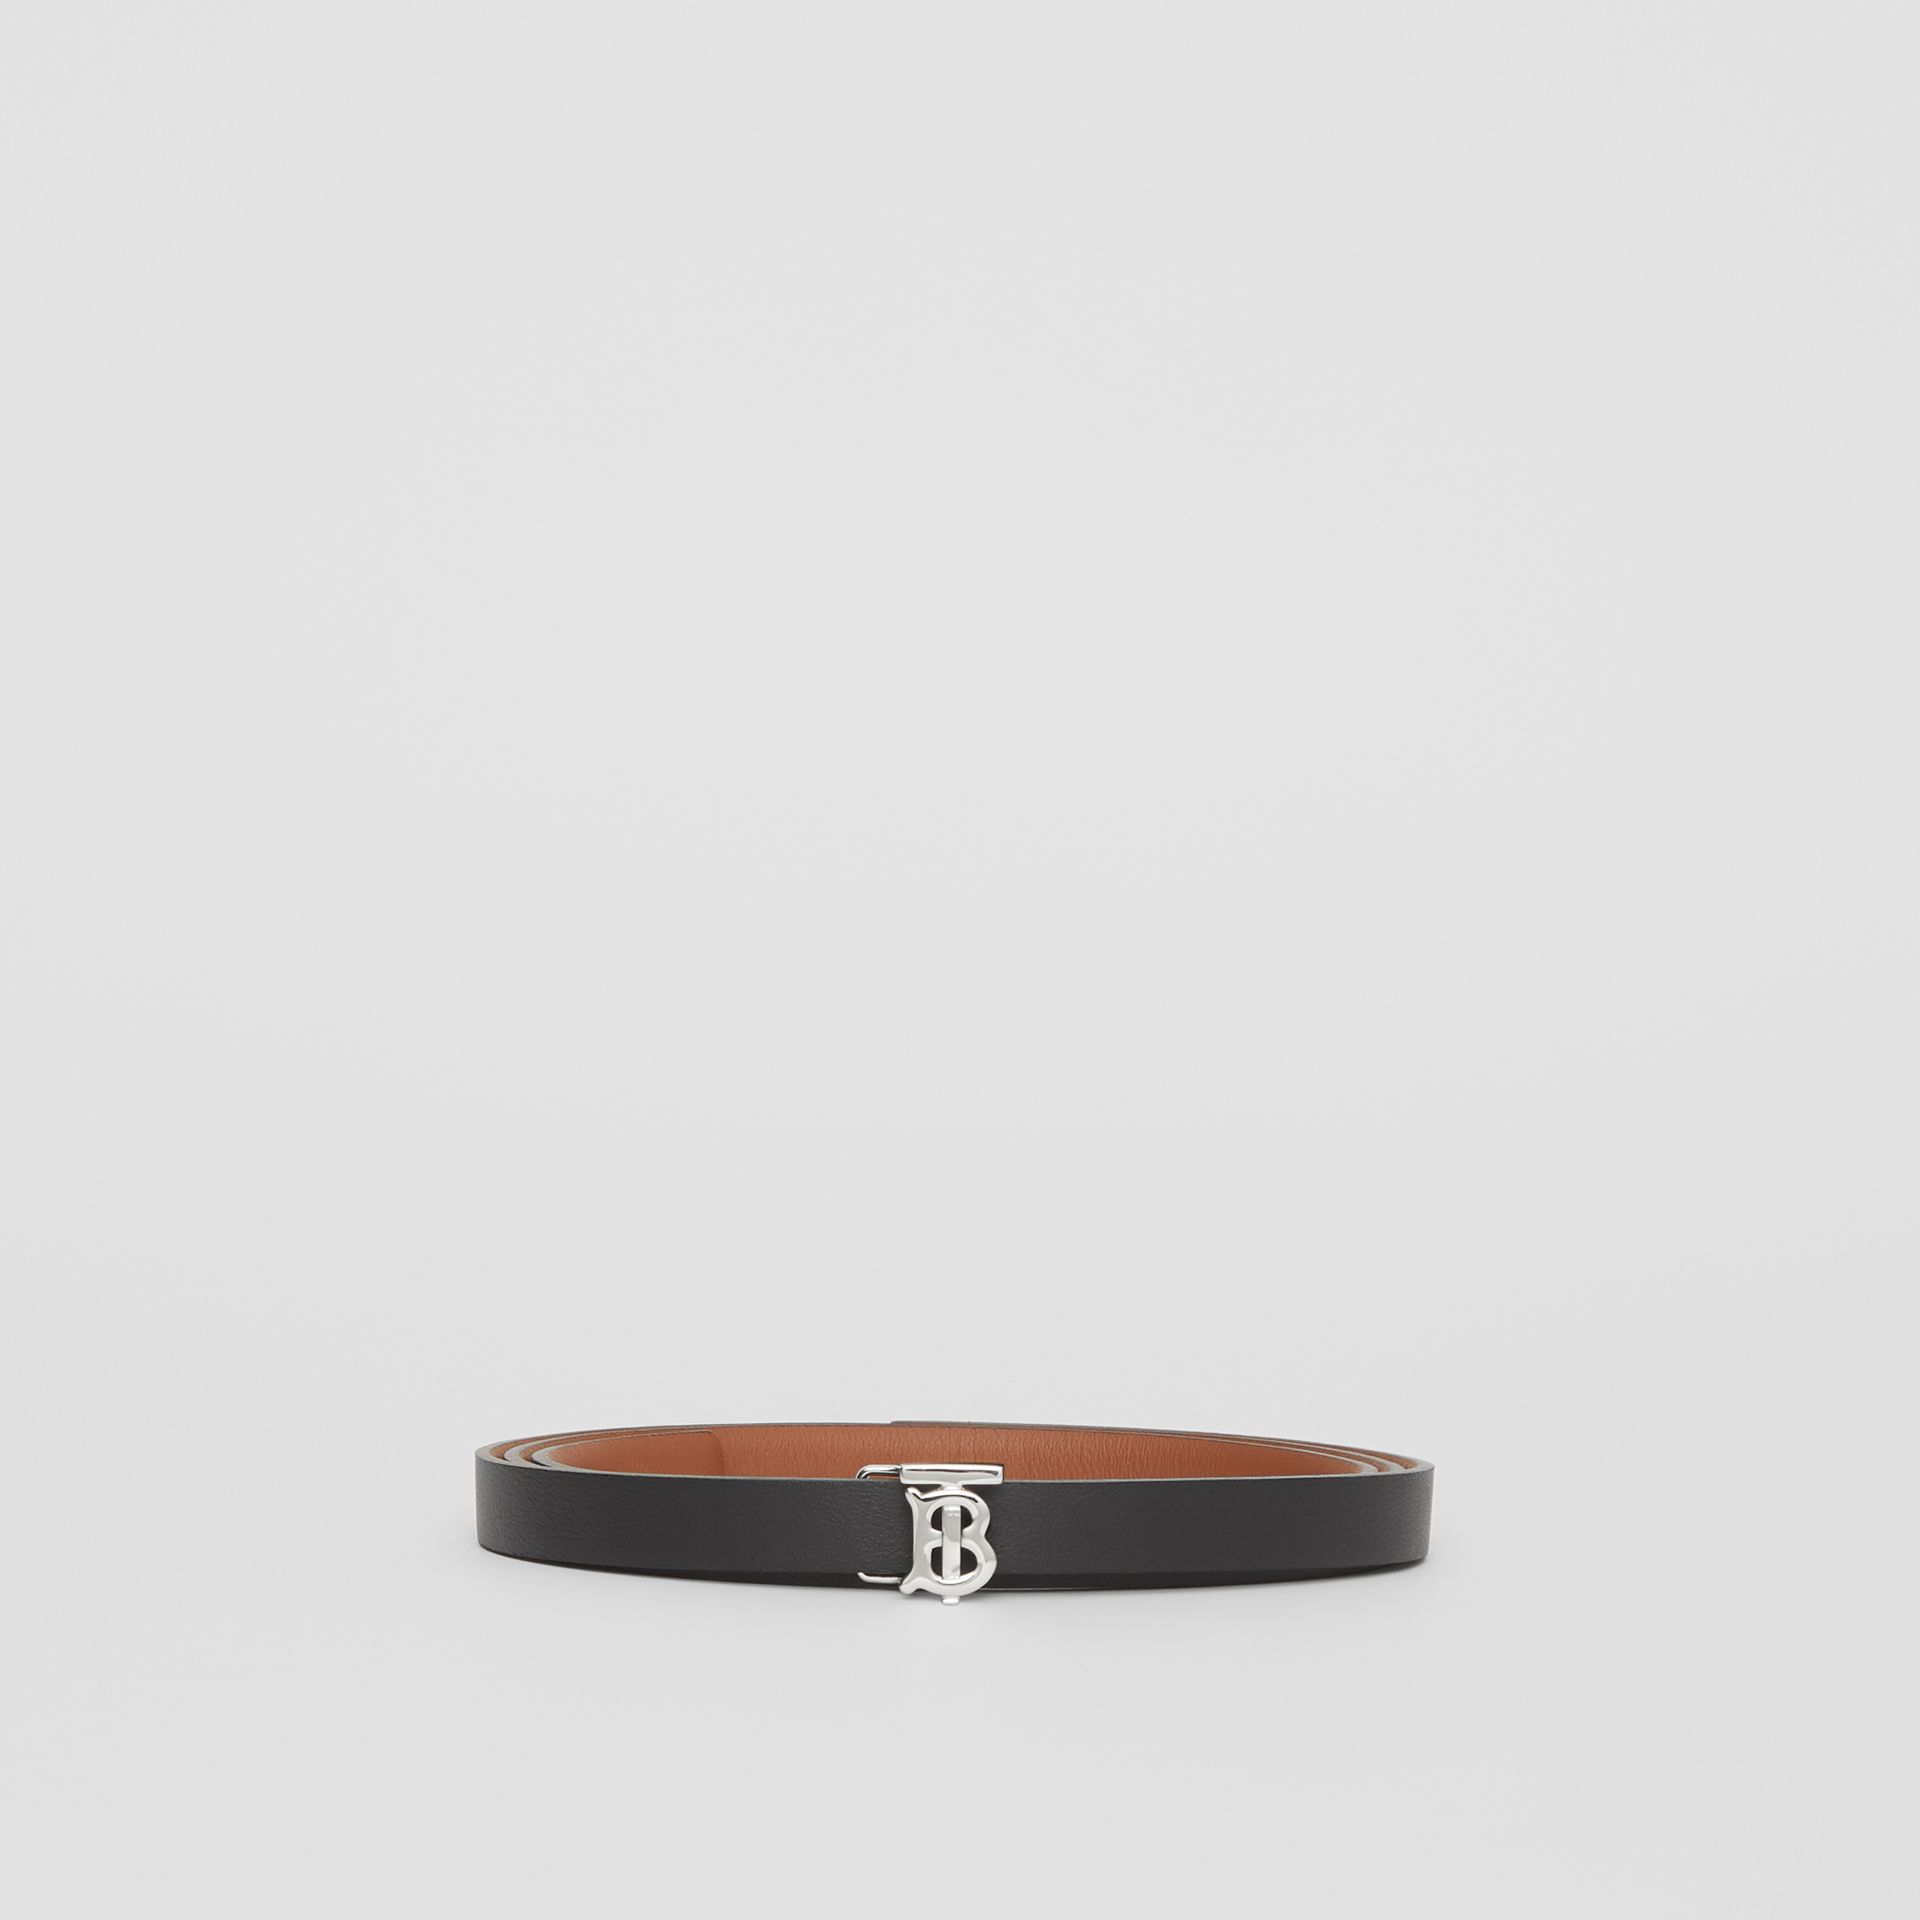 Reversible Monogram Motif Leather Wrap Belt in Malt Brown/black - Women | Burberry - gallery image 6